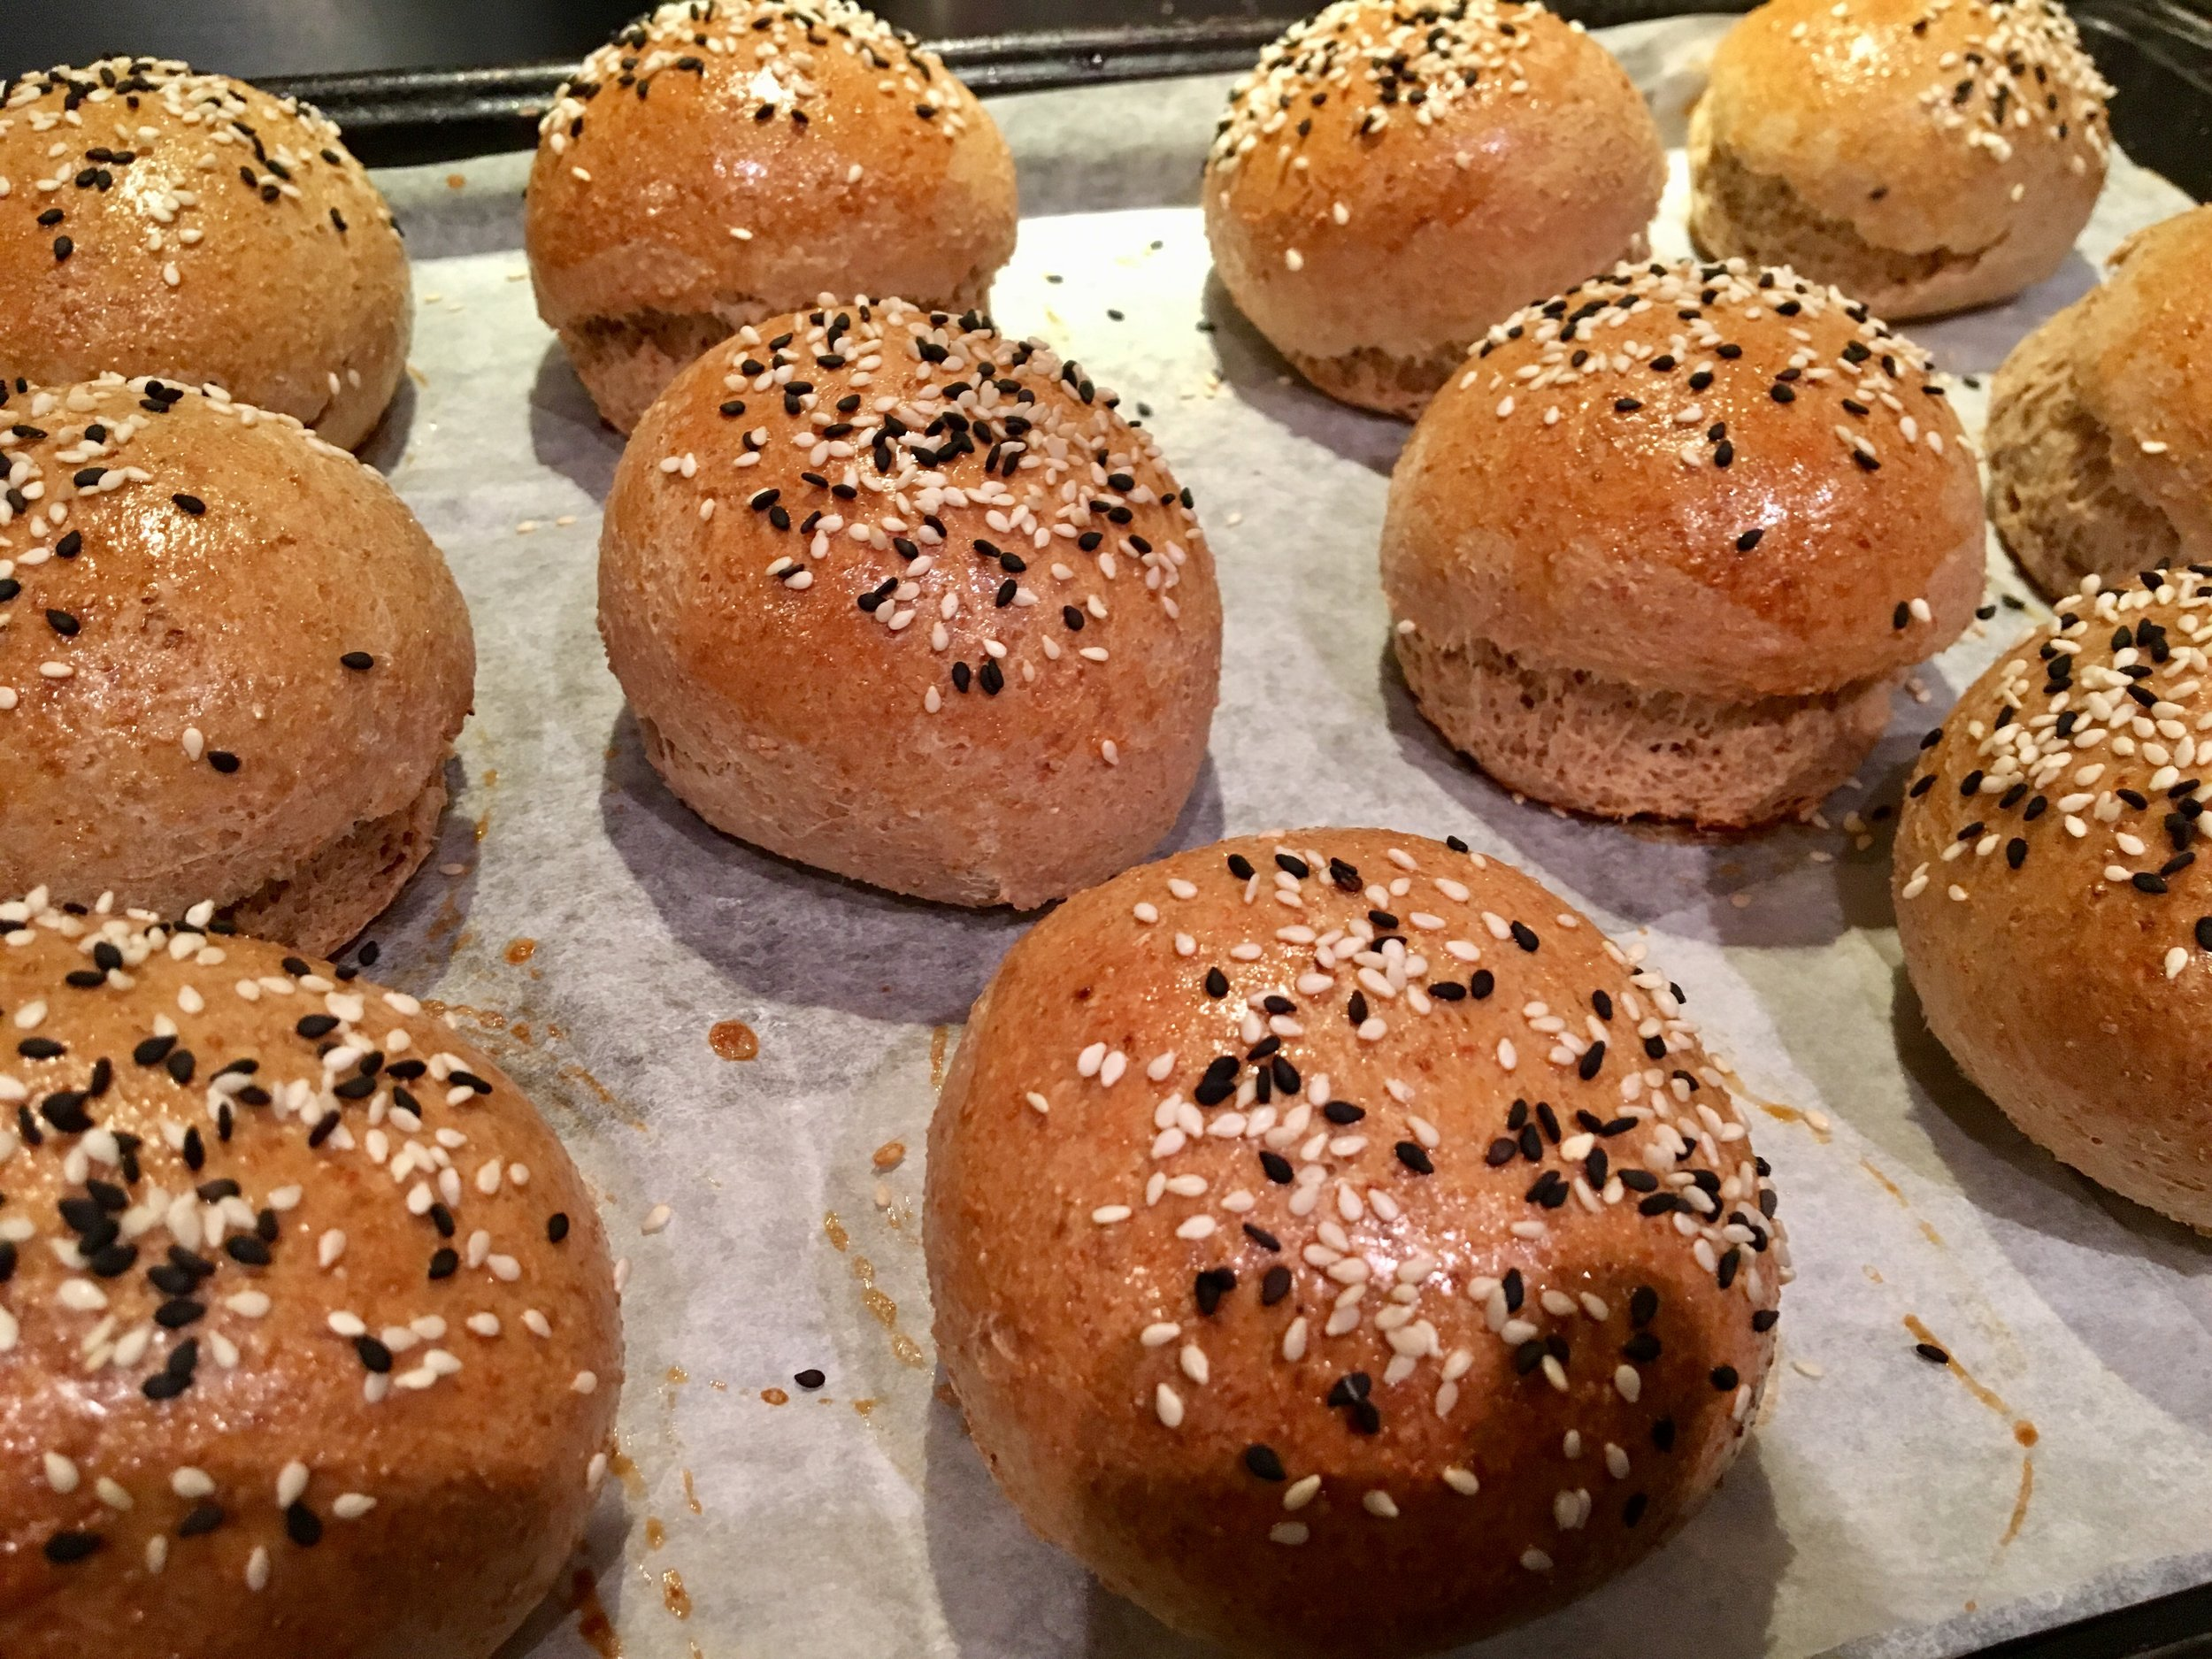 Whole Wheat Brioche Buns fresh out of the oven.